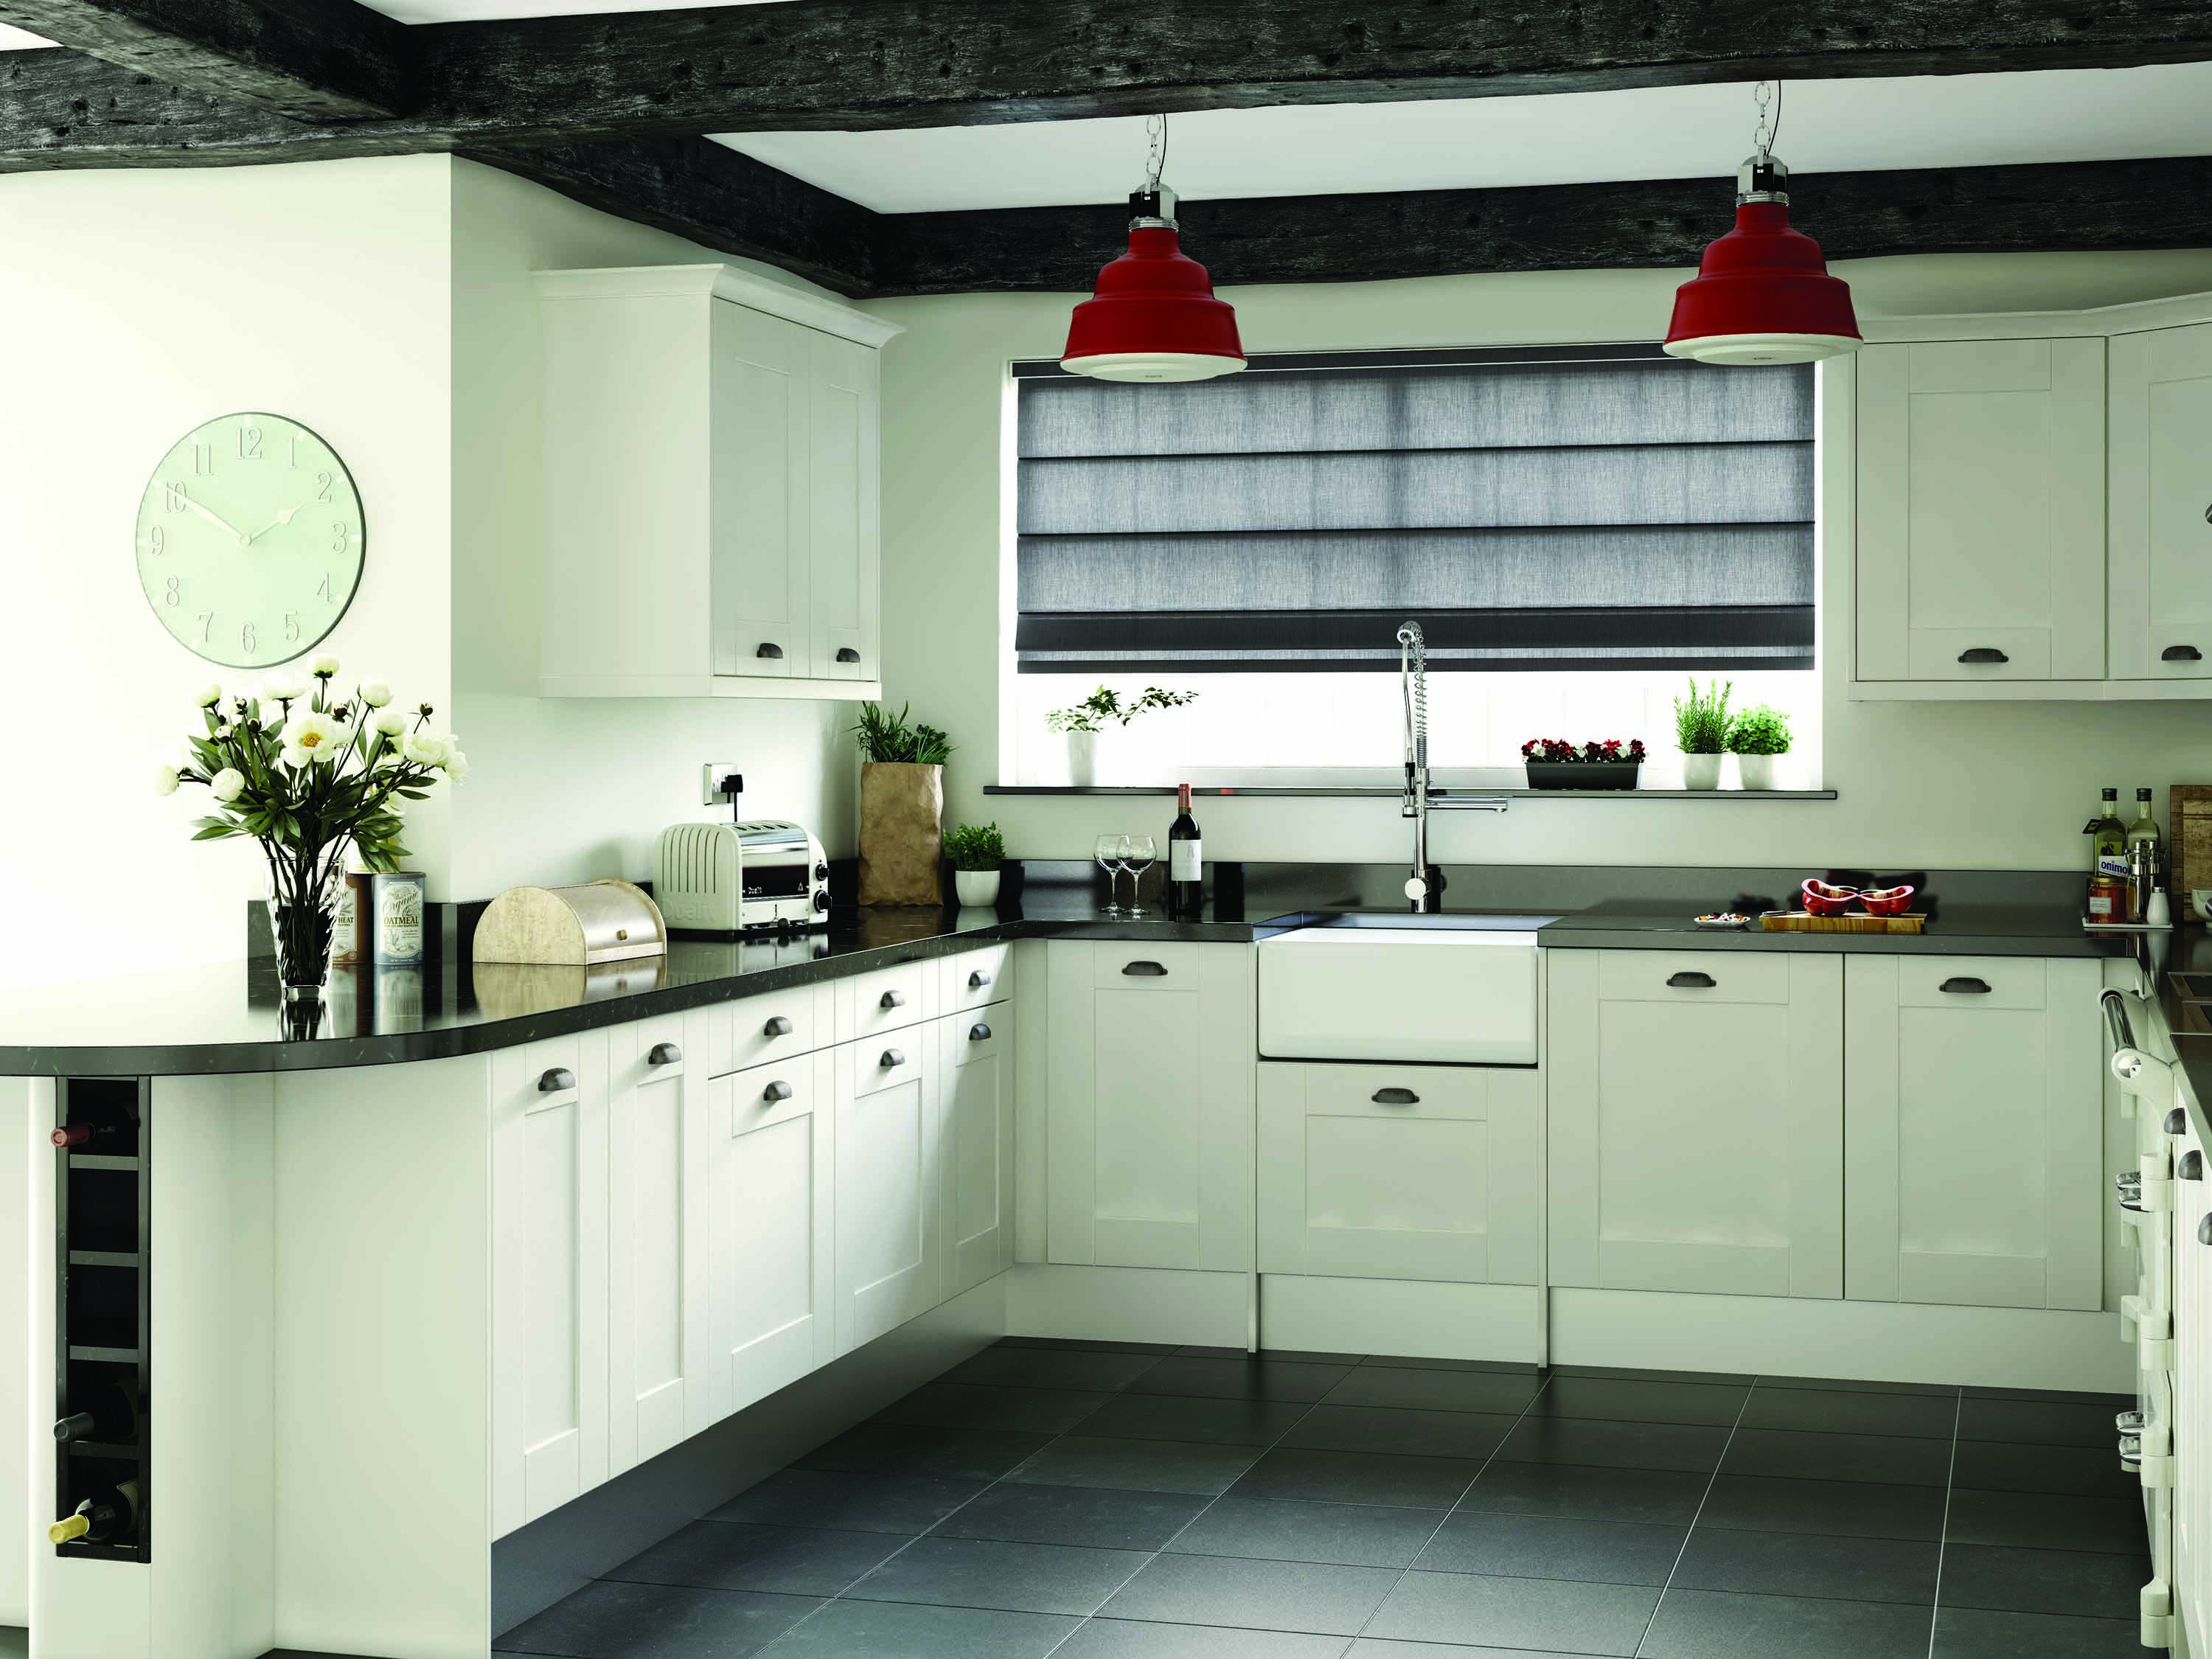 These kitchen blinds are made to measure using any fabric or design